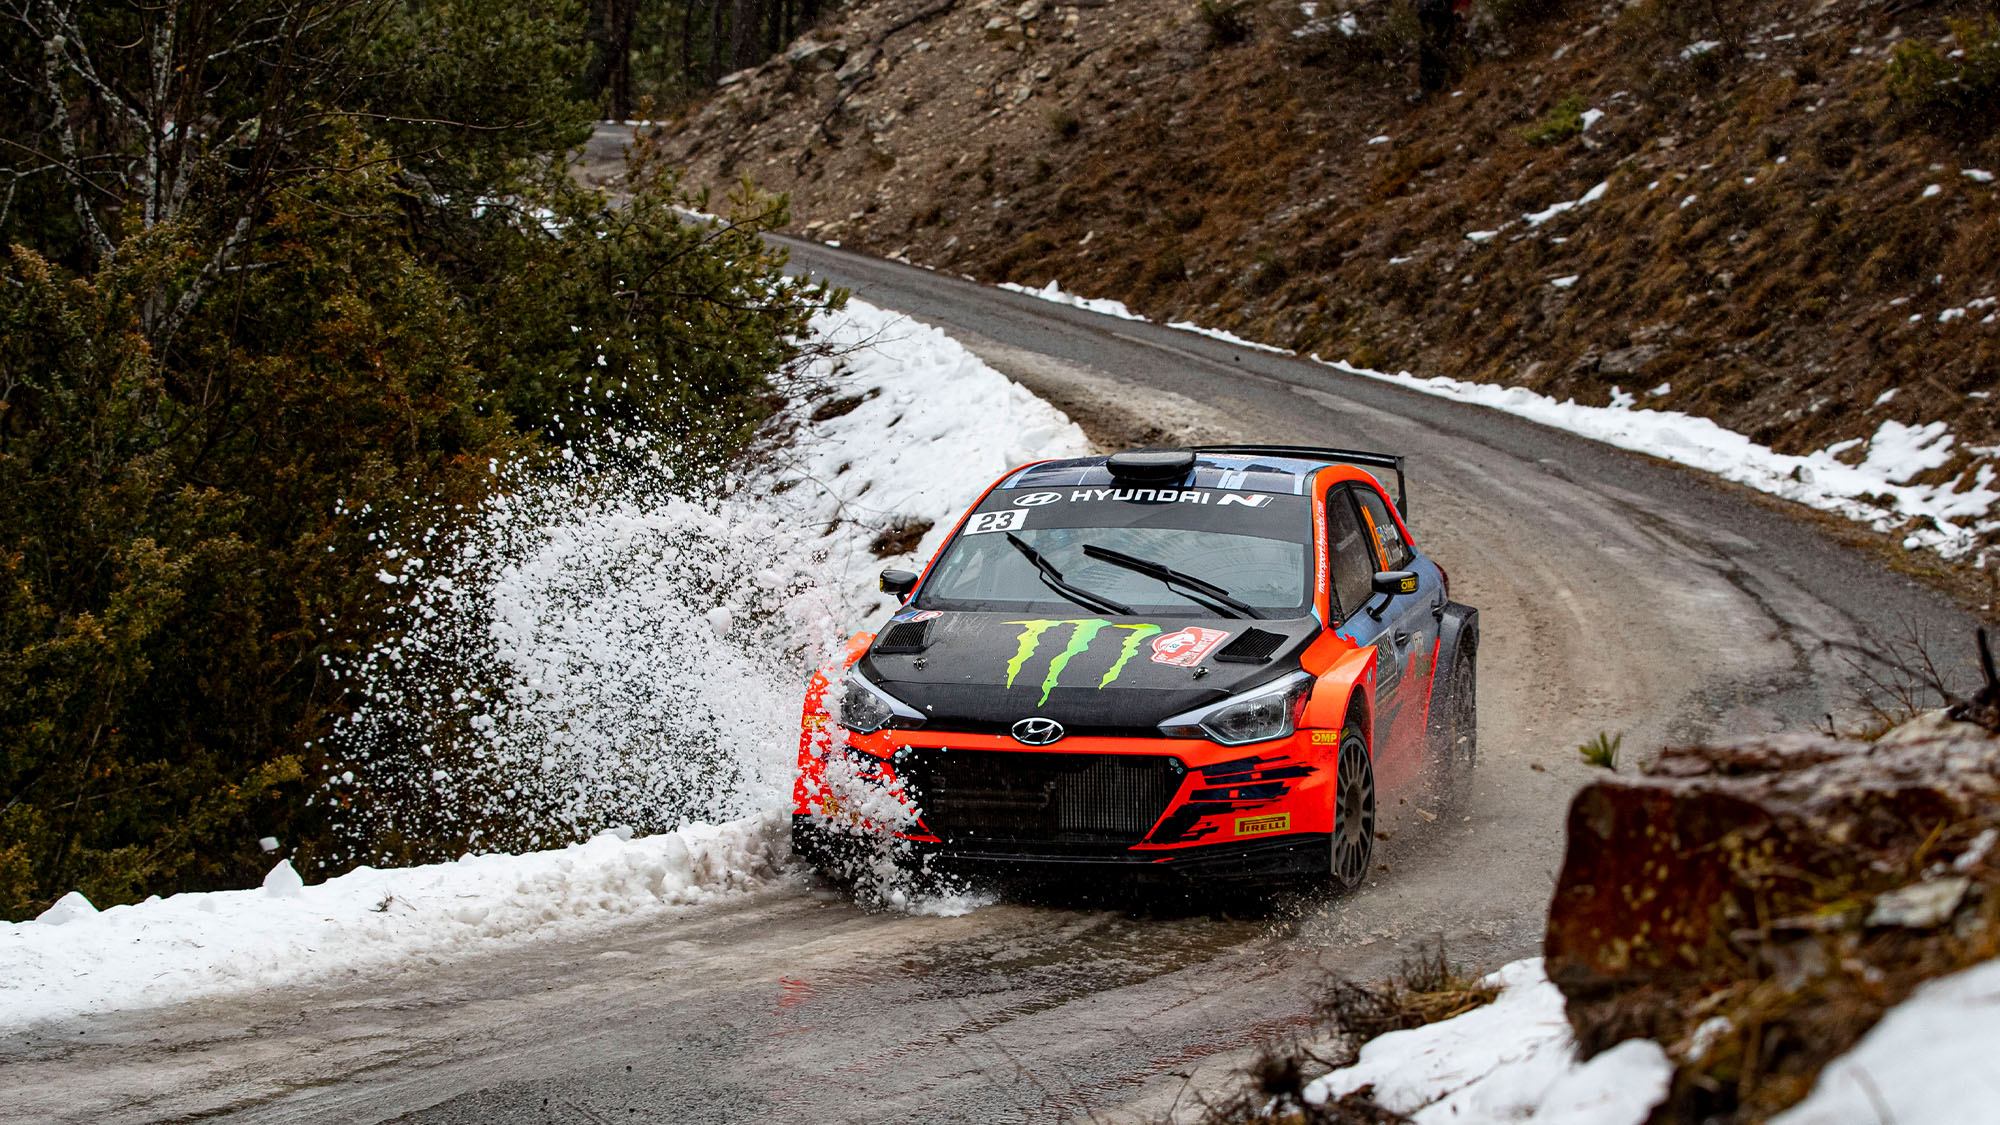 Oliver Solberg, son of rally legend Petter, to make WRC debut at Arctic Rally Finland